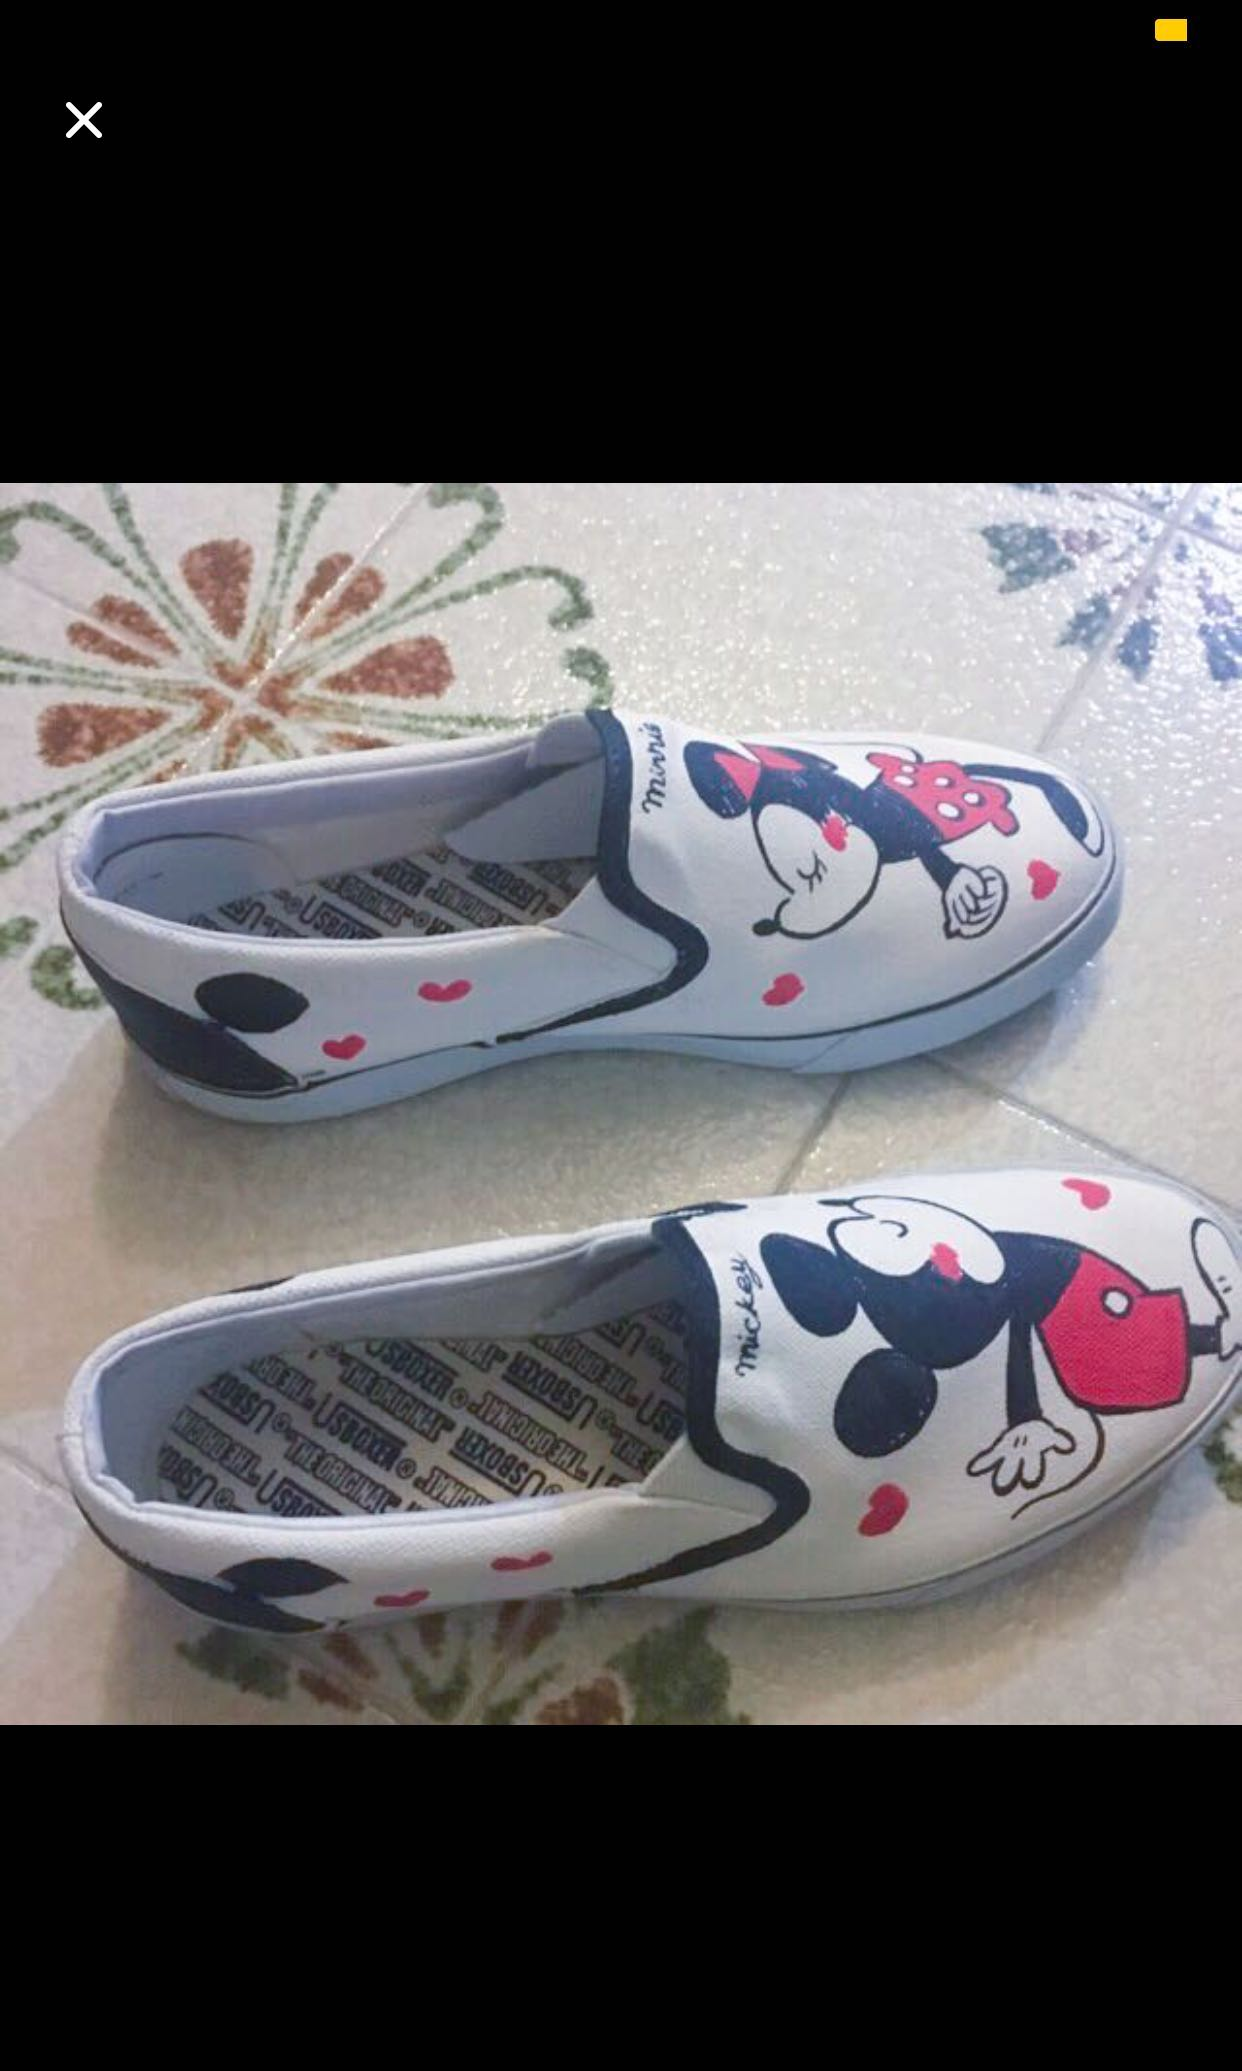 Mickey Mouse shoes, Women's Fashion, Shoes, Sneakers on